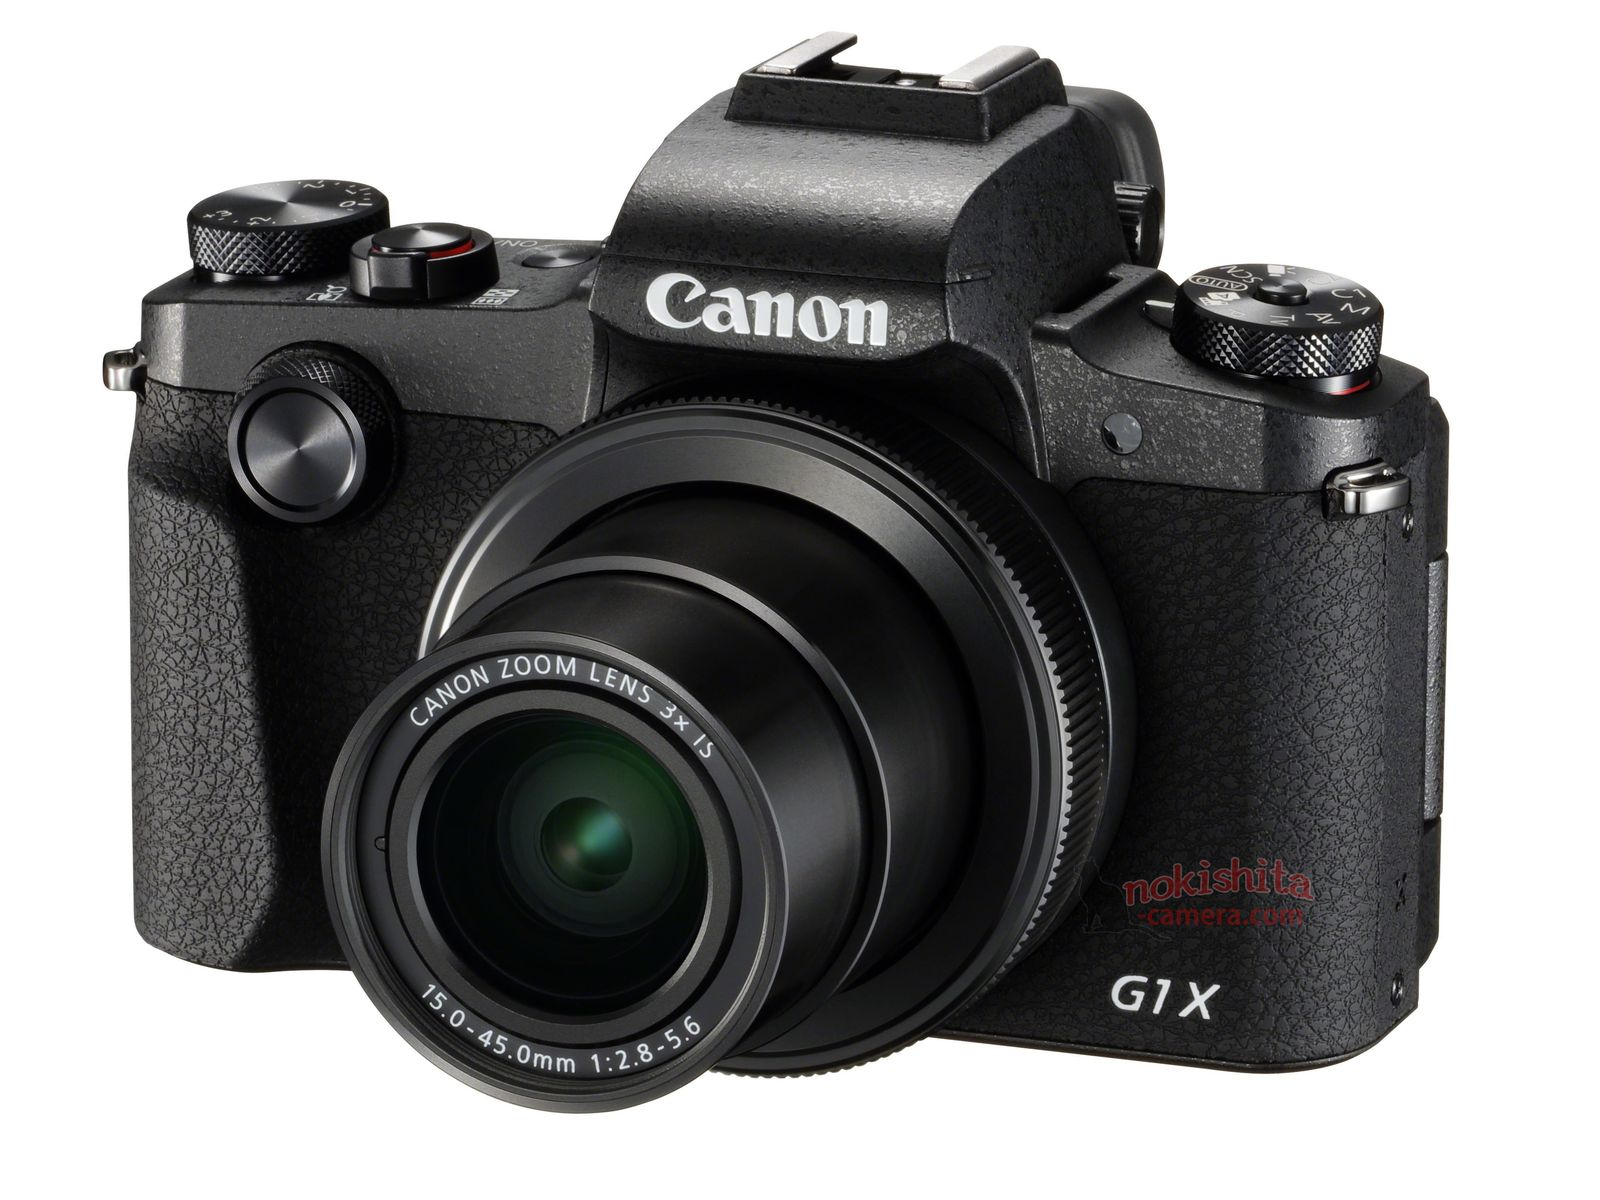 canon powershot g1 x mark iii camera specifications leaked. Black Bedroom Furniture Sets. Home Design Ideas